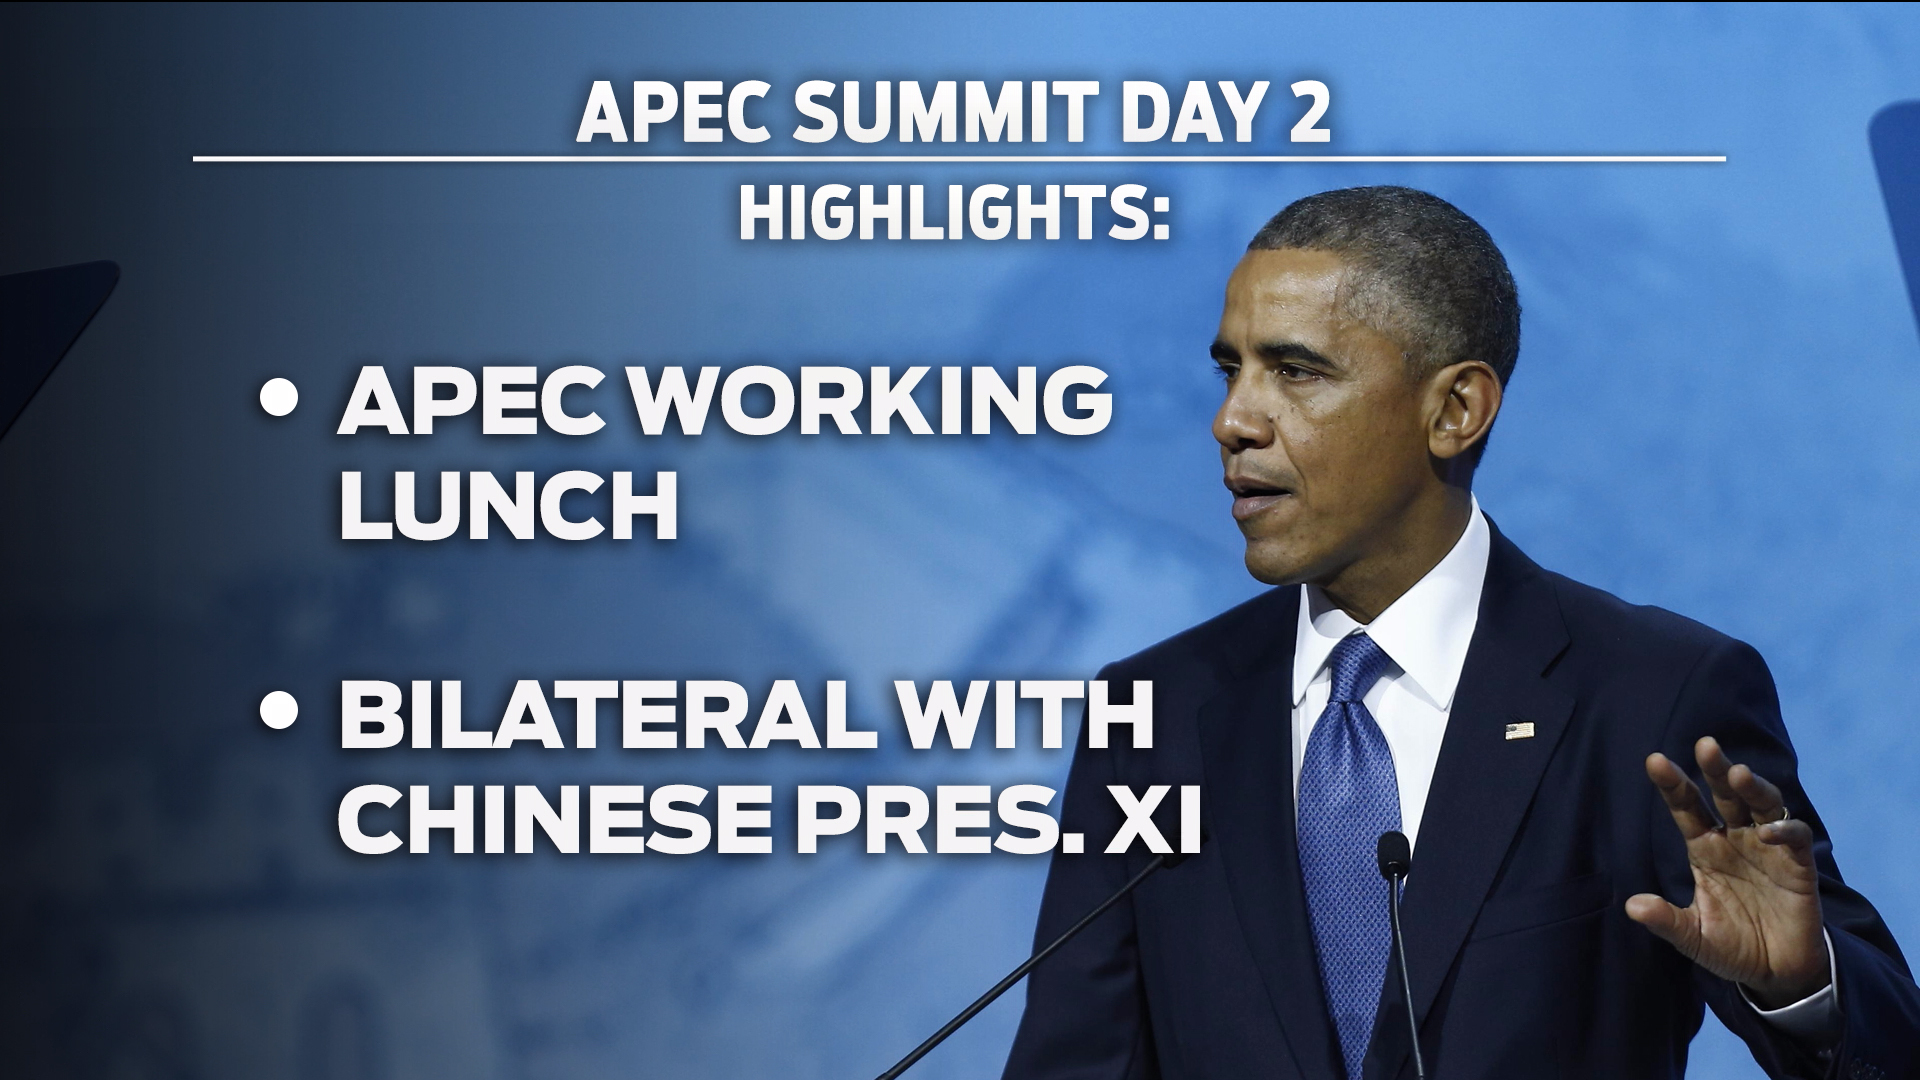 What are President Obama's goals at APEC?